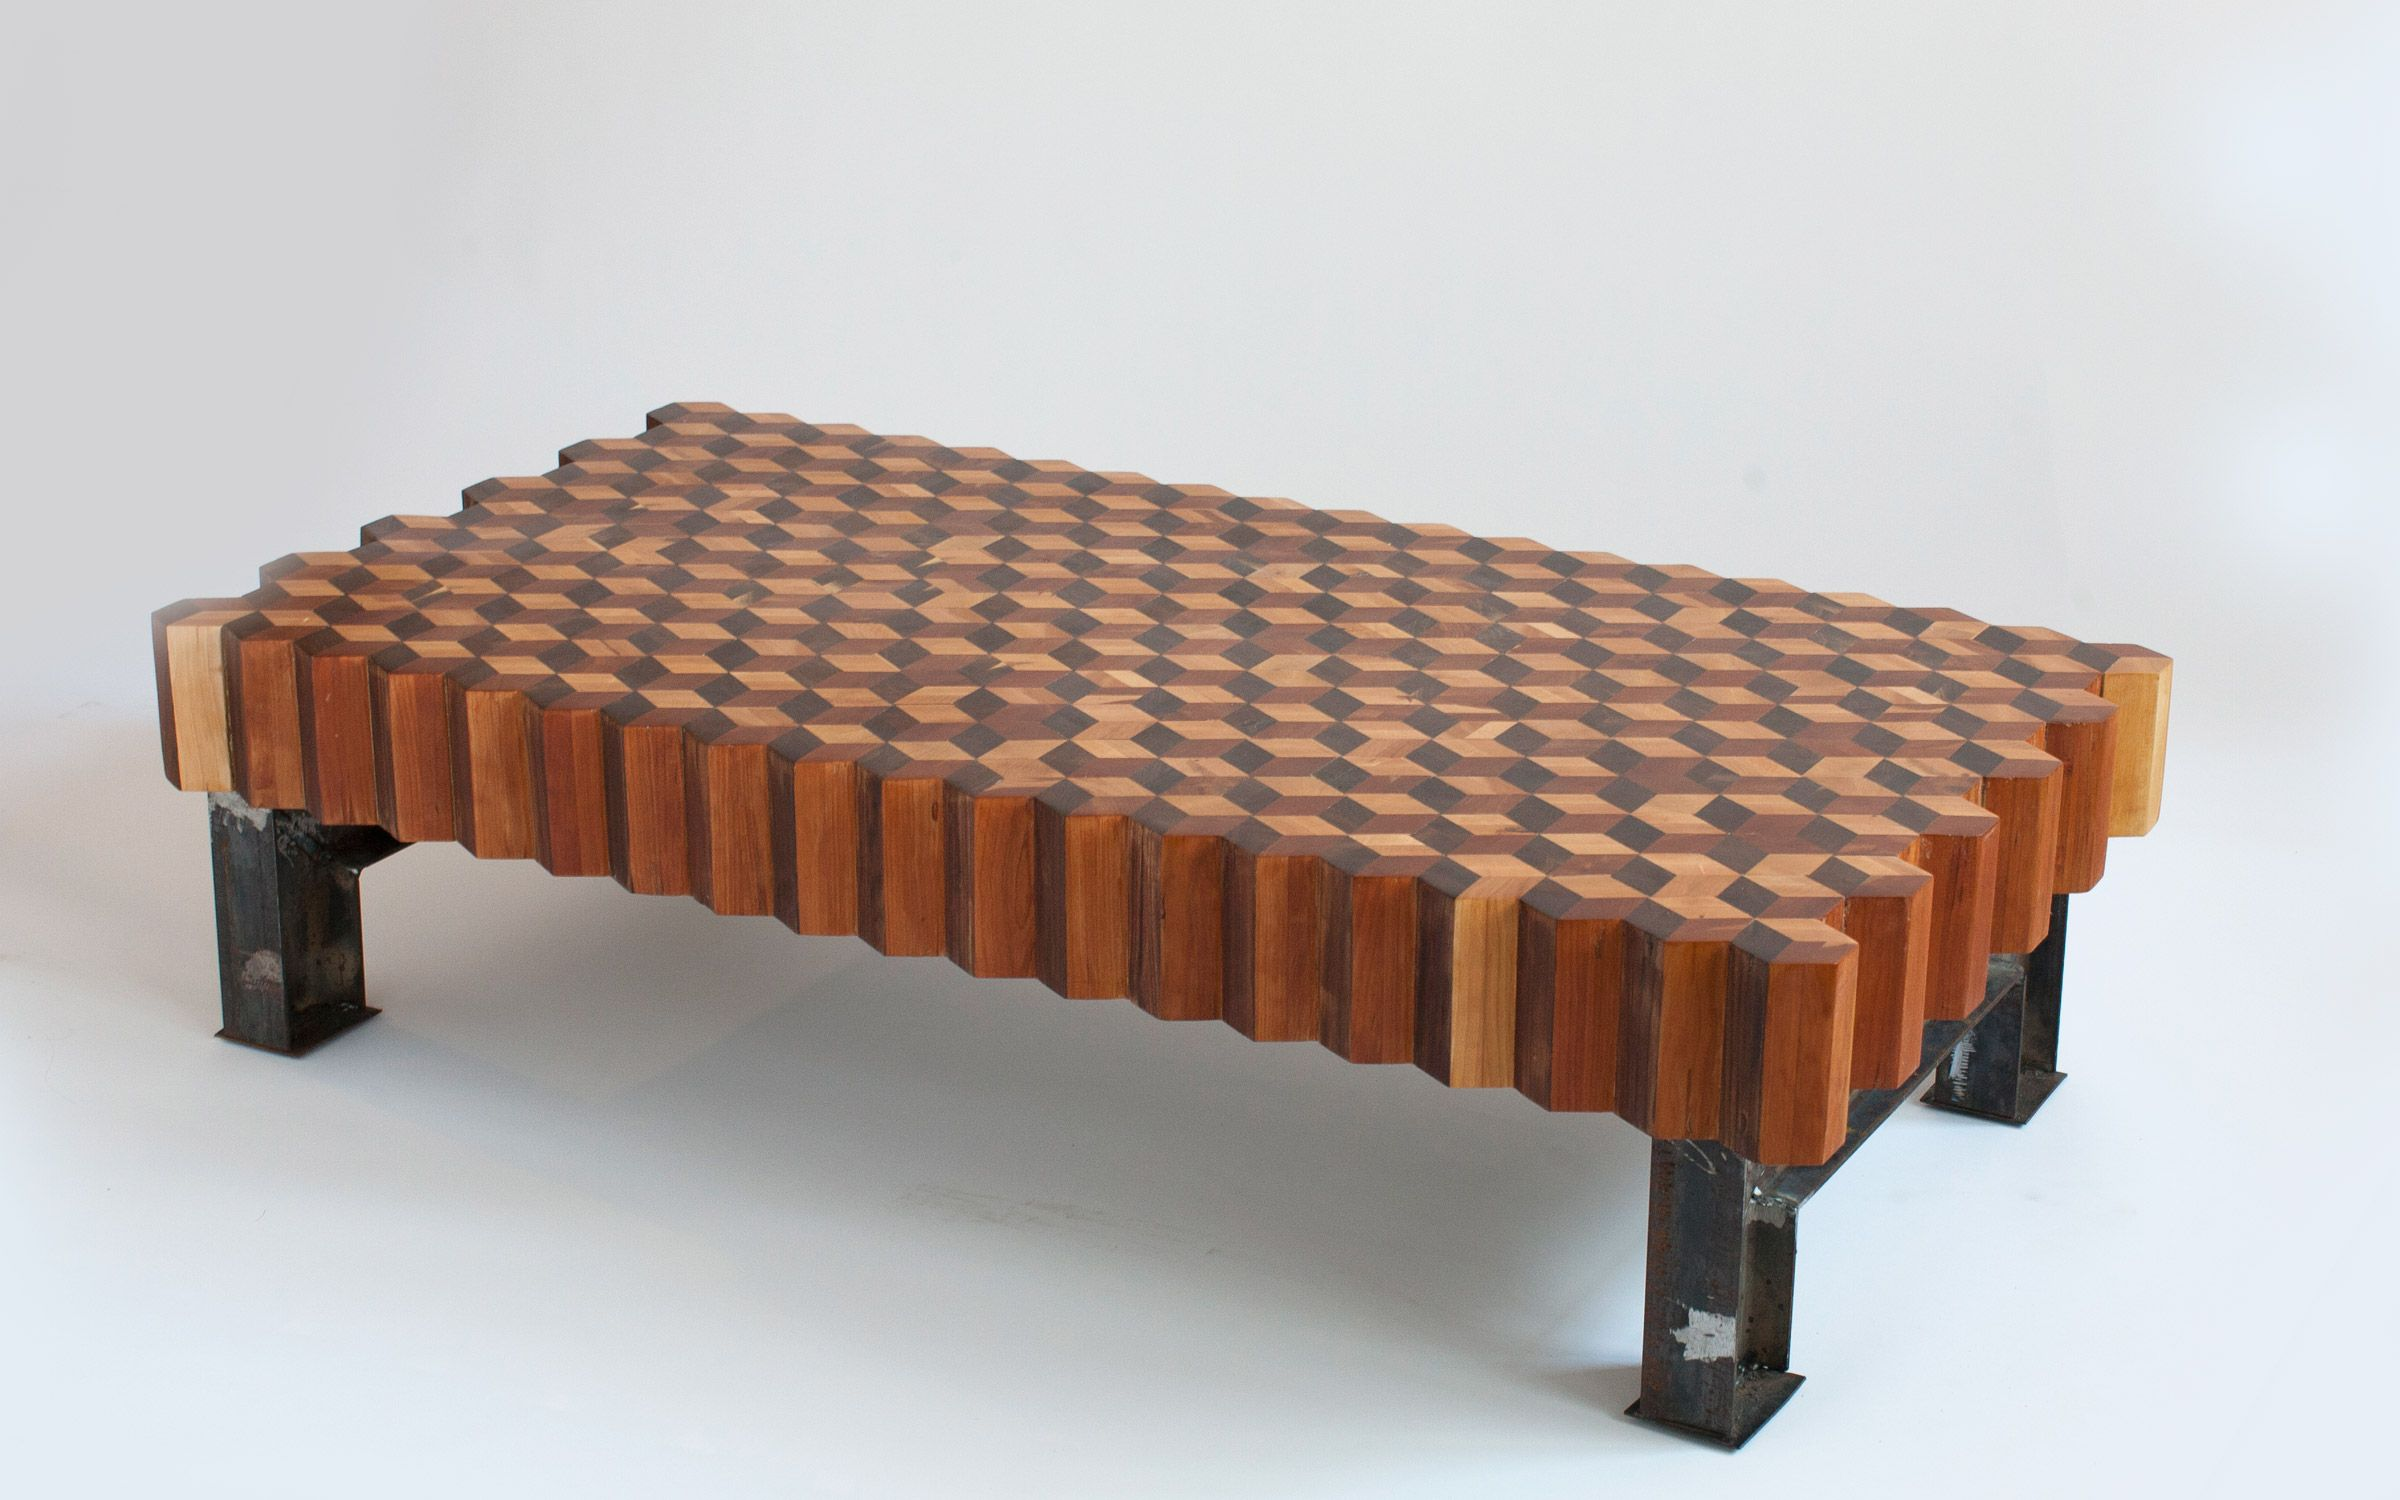 epic 3 X 6 and 6 inches thick tumbling block pattern coffee